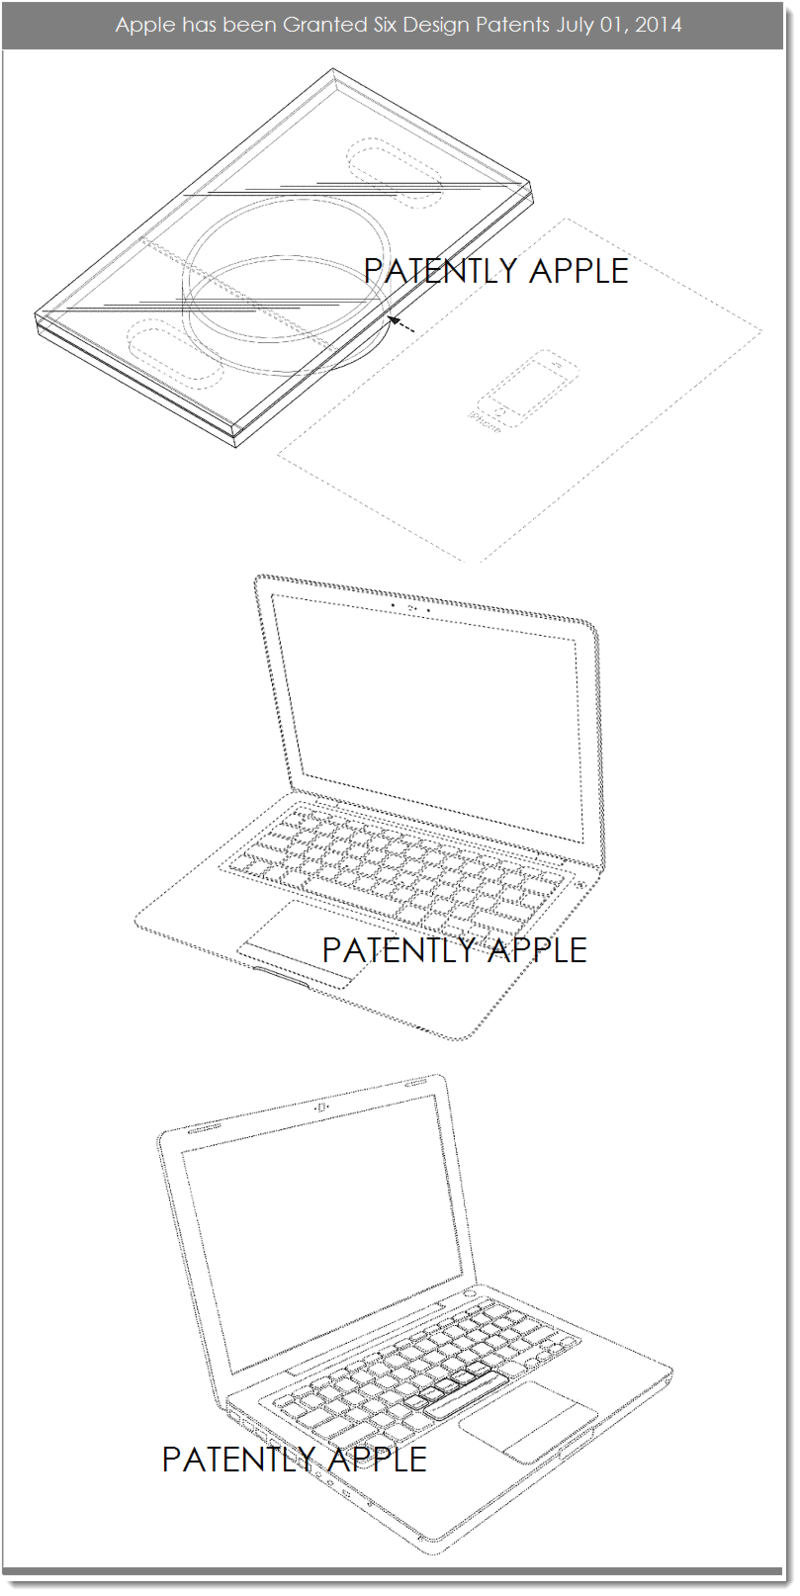 6AF - APPLE GRANTED 6 DESIGN PATENTS JULY 1, 2014